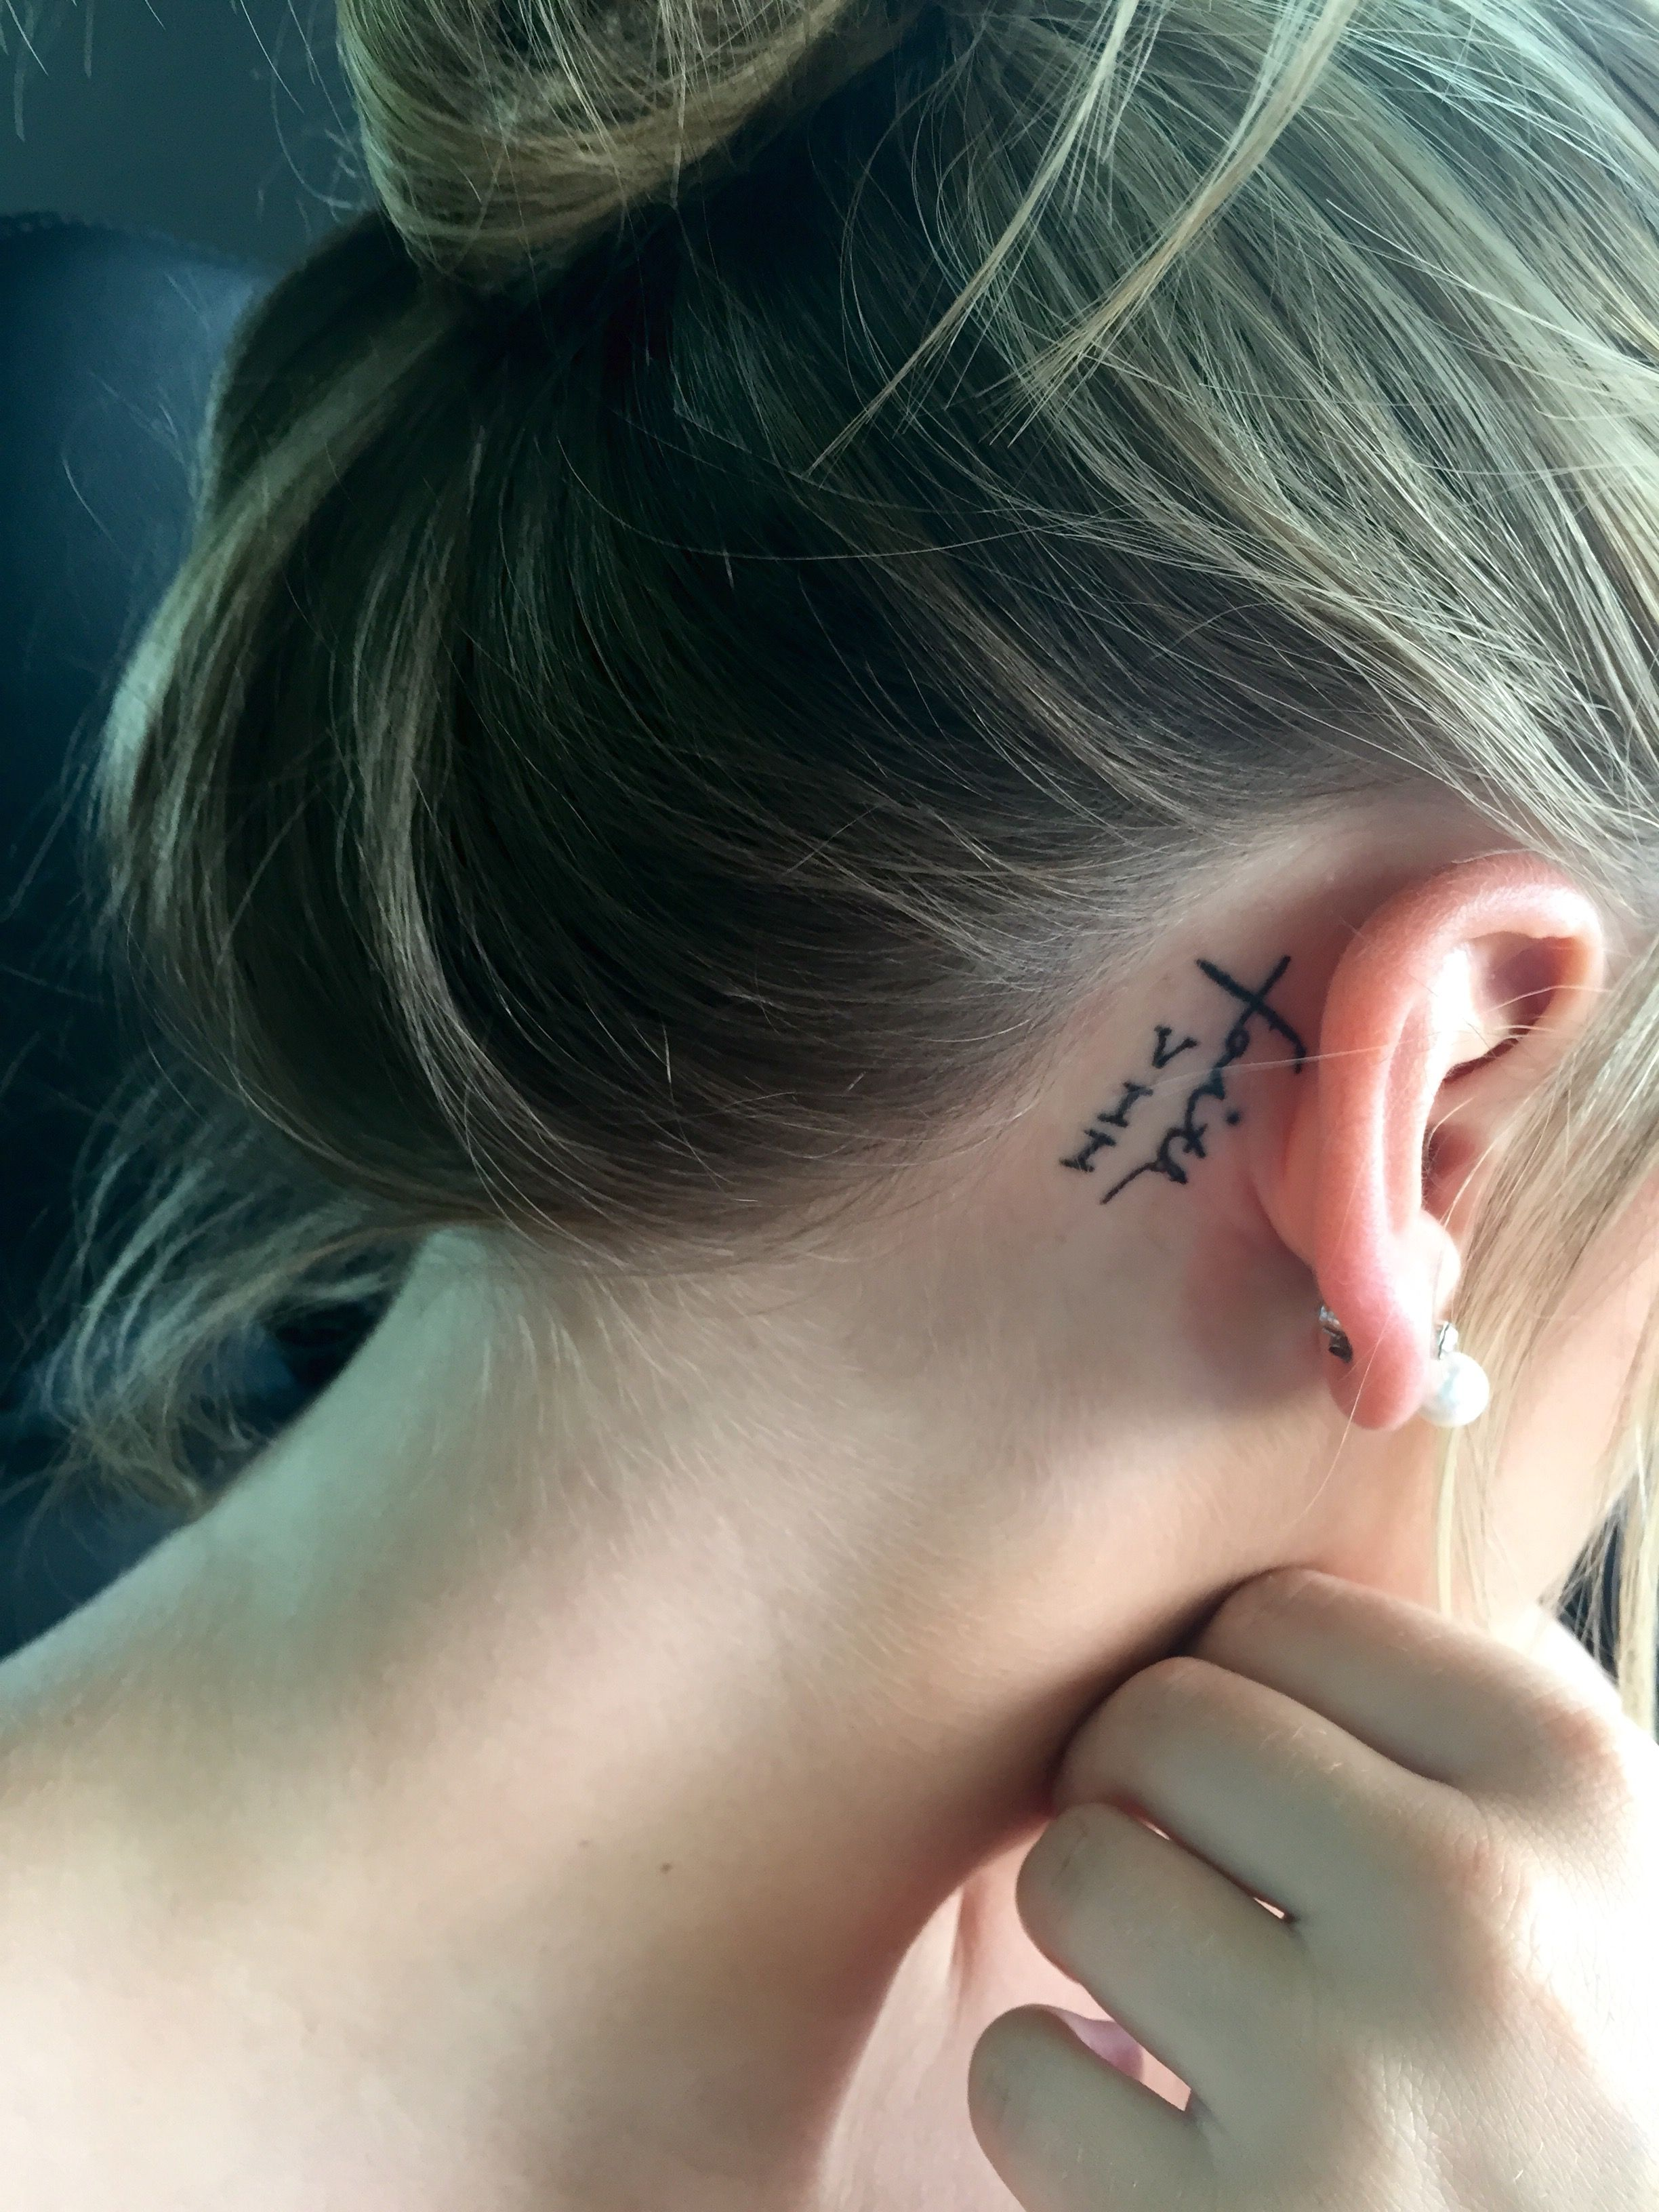 My Tattoo Word Faith In Best Friend S Handwriting In The Shape Of The Cross With The Roman Numeral Seven Next To Neck Tattoo Behind Ear Tattoo Date Tattoos